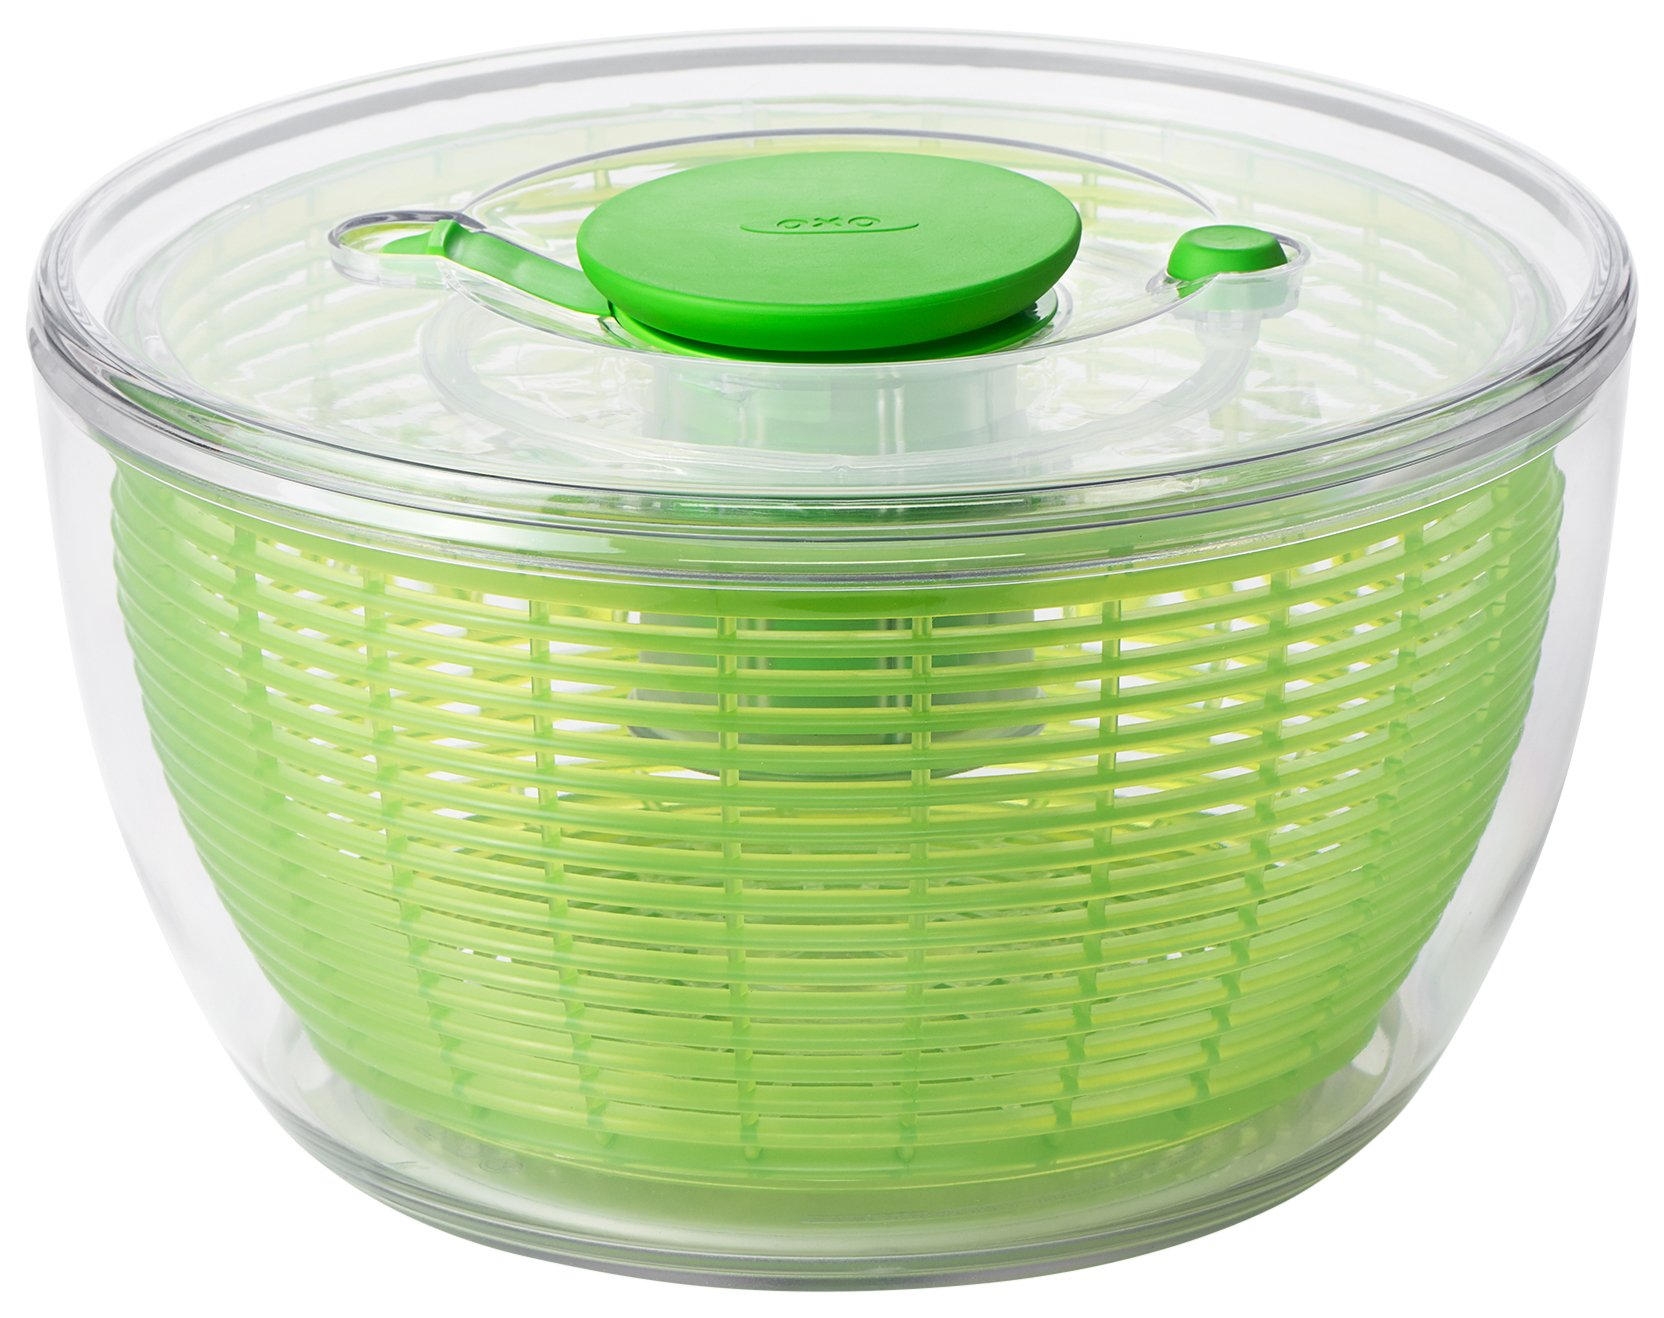 OXO Good Grips Salad Spinner 4.0 Green, Plastic, Green, 58.42 x 29.84 x 35.56 cm by OXO